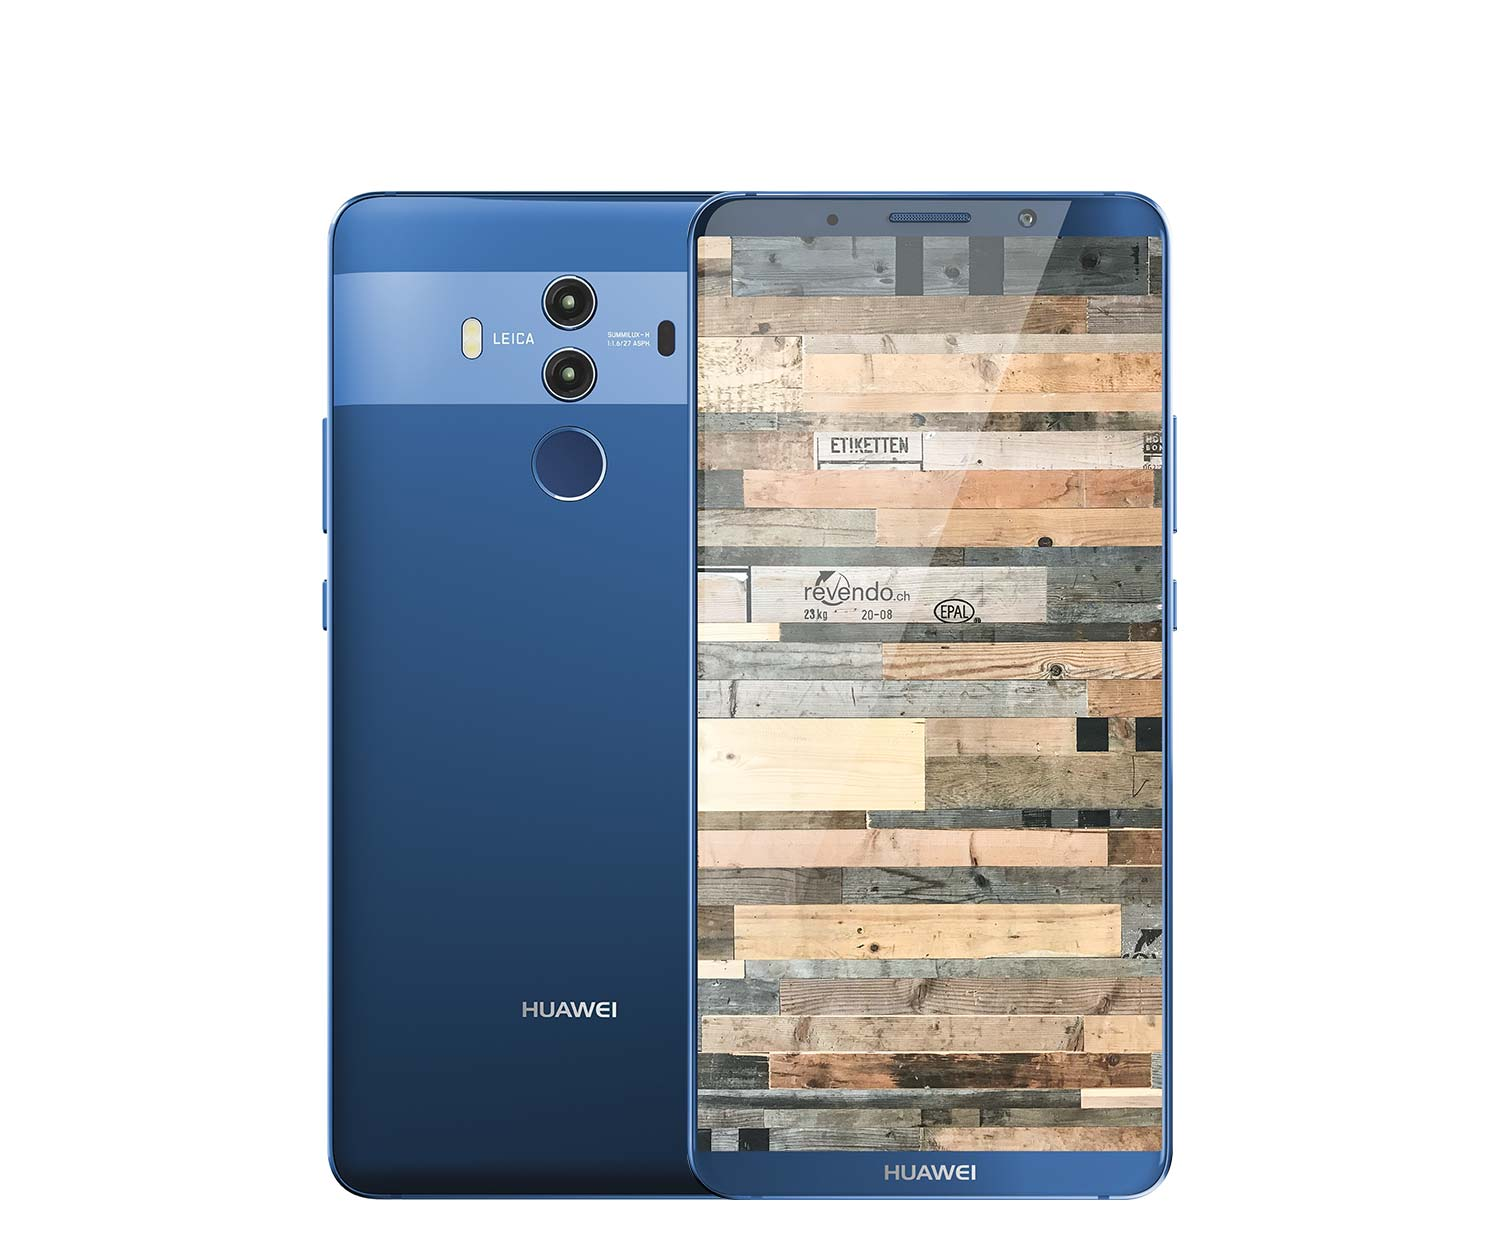 huawei mate 10 pro dual sim 128 gb midnight blue. Black Bedroom Furniture Sets. Home Design Ideas